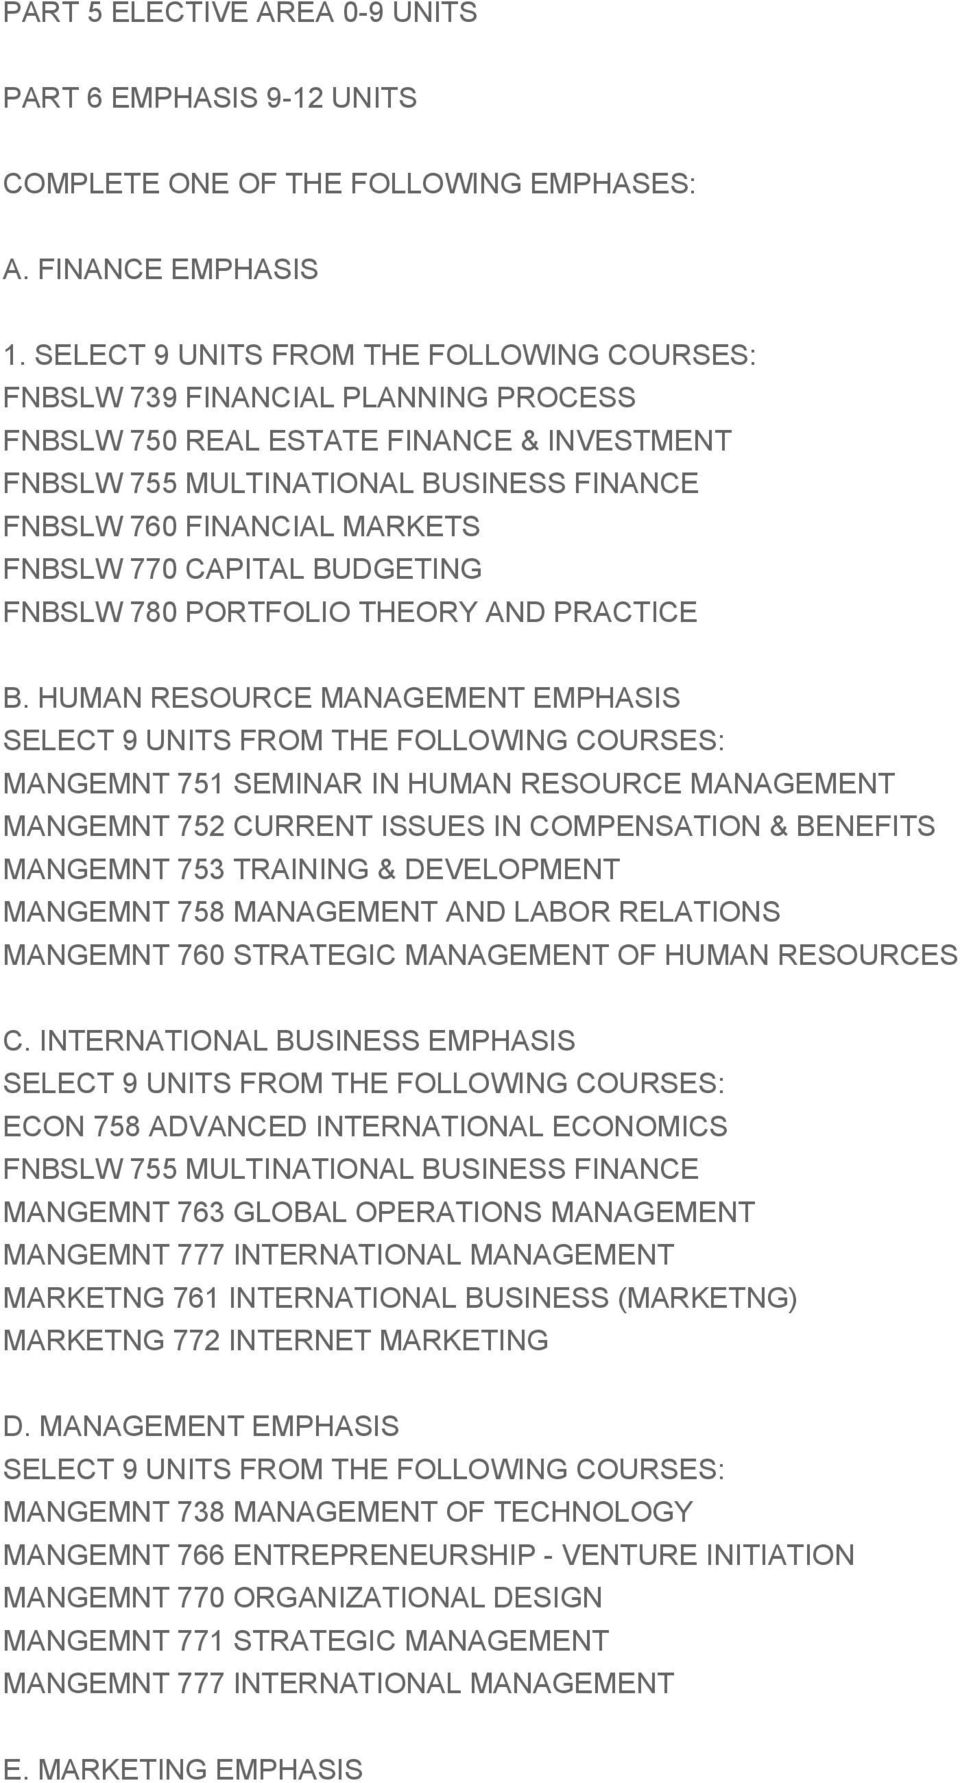 FNBSLW 770 CAPITAL BUDGETING FNBSLW 780 PORTFOLIO THEORY AND PRACTICE B.